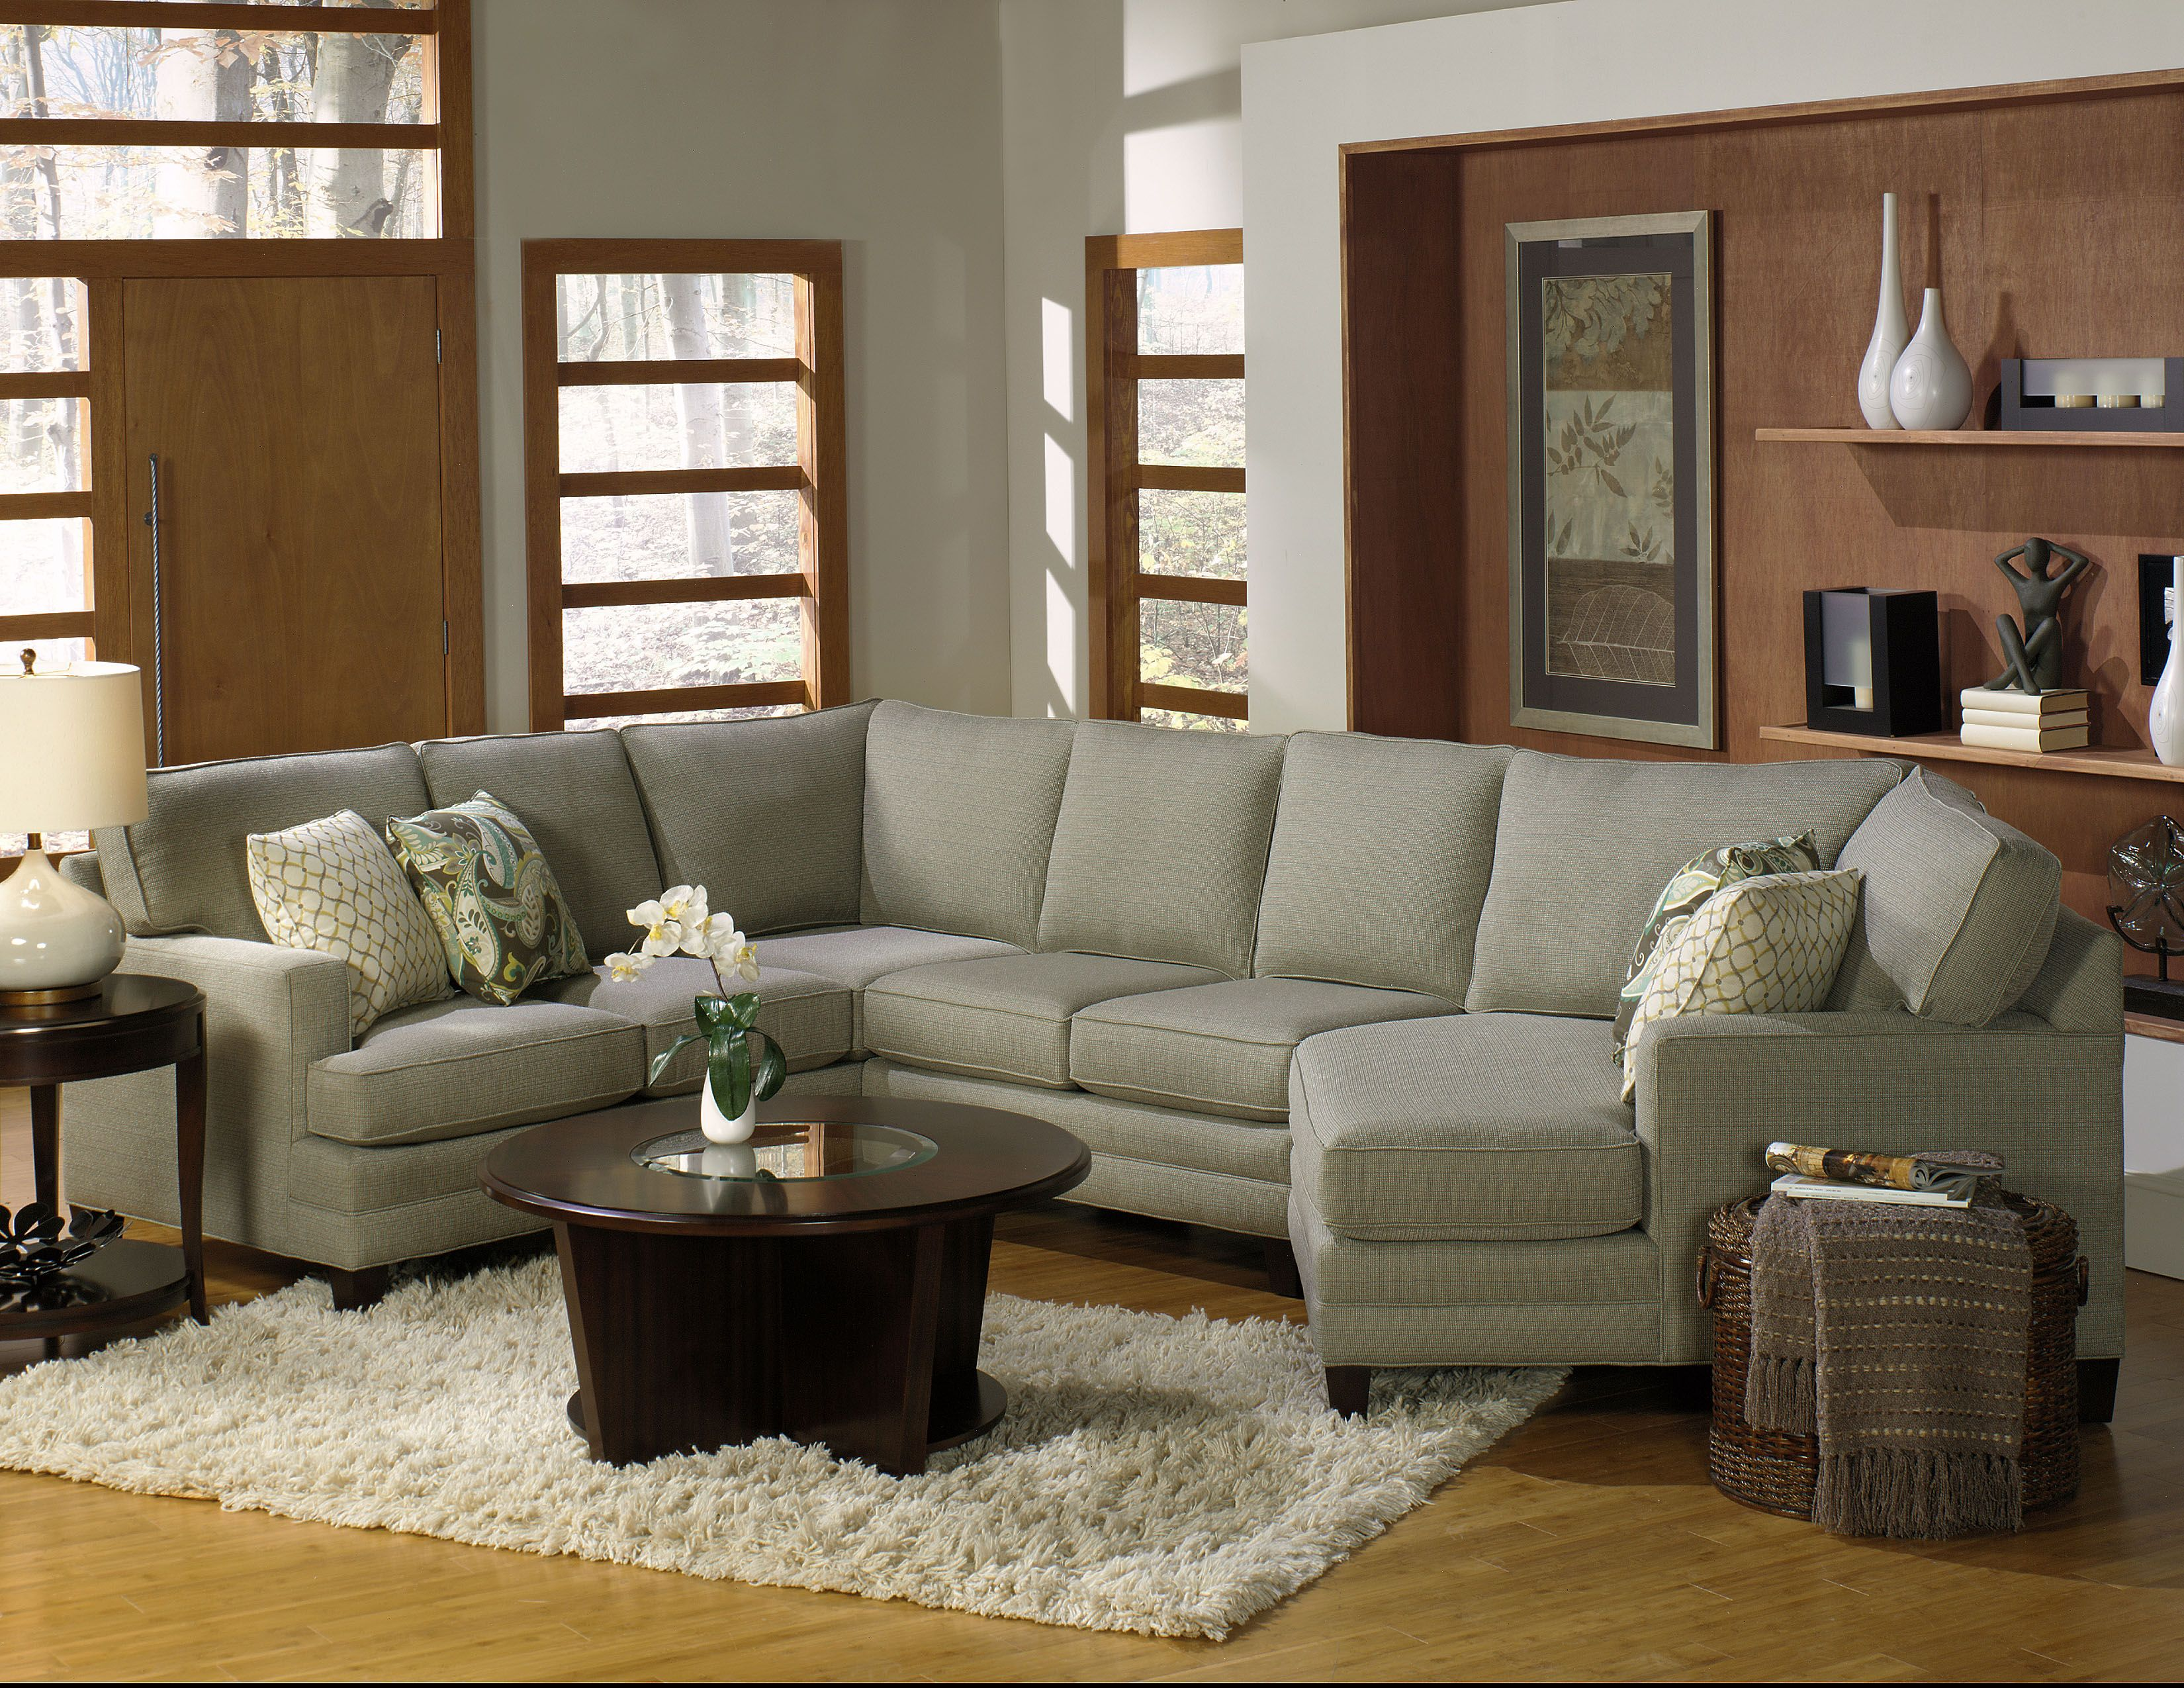 extraordinary furniture sofas remodel of chairs full beautiful sale and grey sectional made american cupboard about size sofa design for